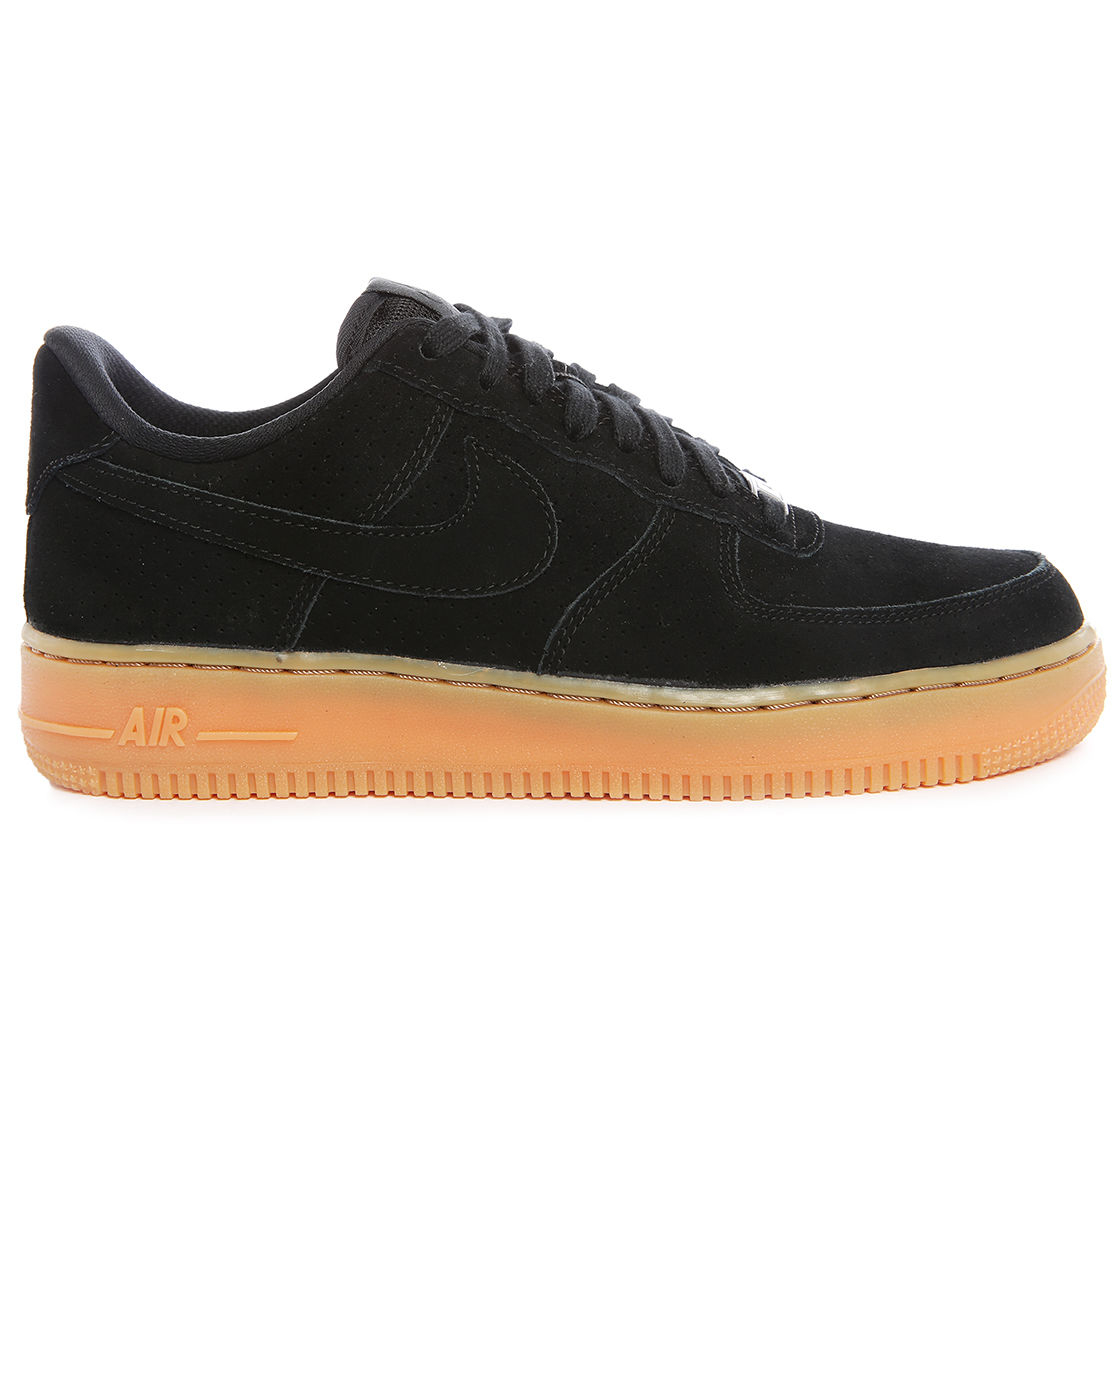 nike wmns air force 1 black perforated suede gumsole sneakers in black for men lyst. Black Bedroom Furniture Sets. Home Design Ideas